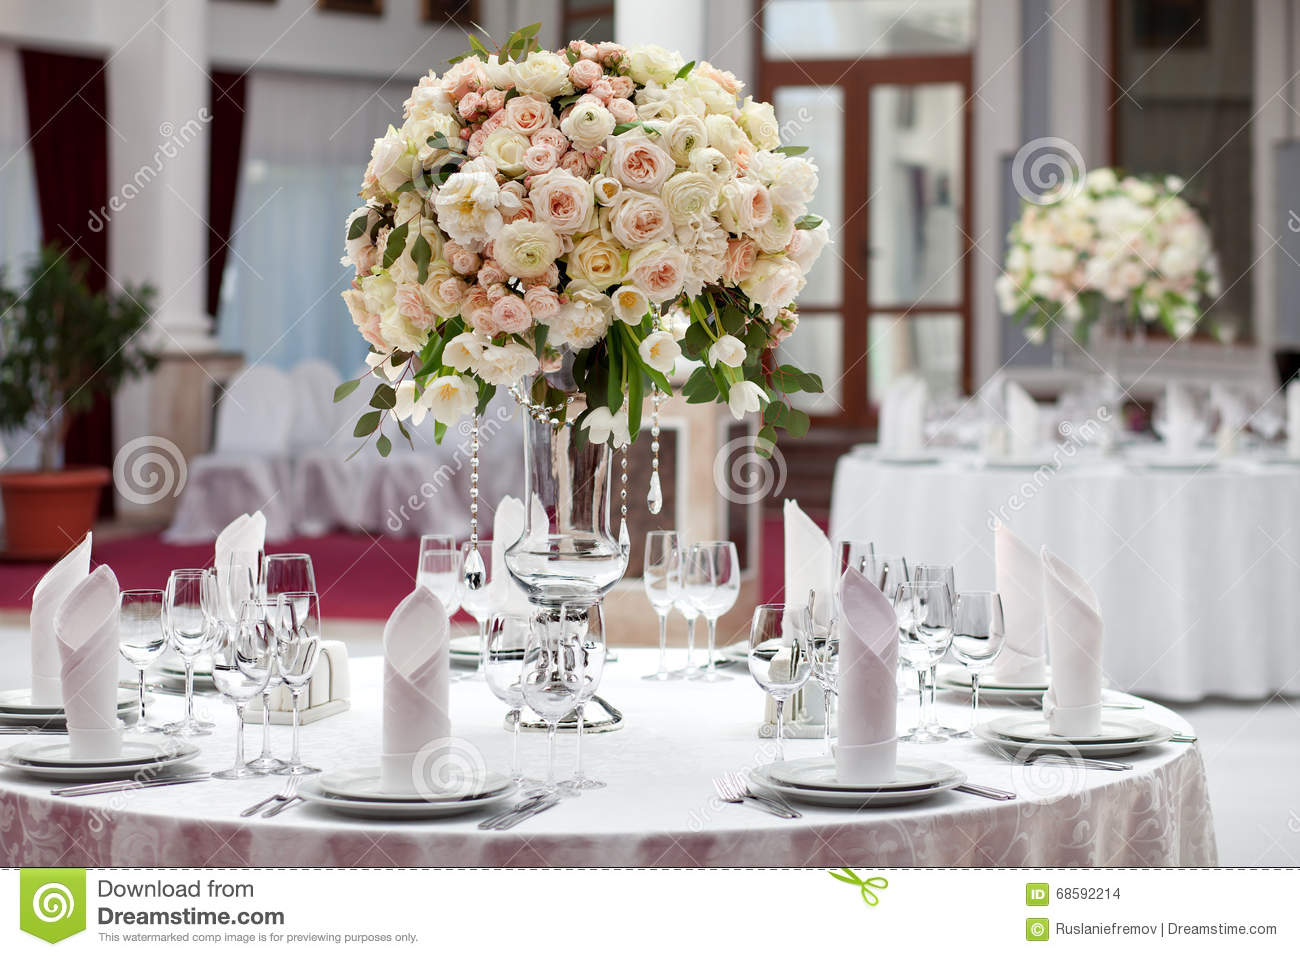 Beautiful Flowers On Table In Wedding Day Luxury Holiday